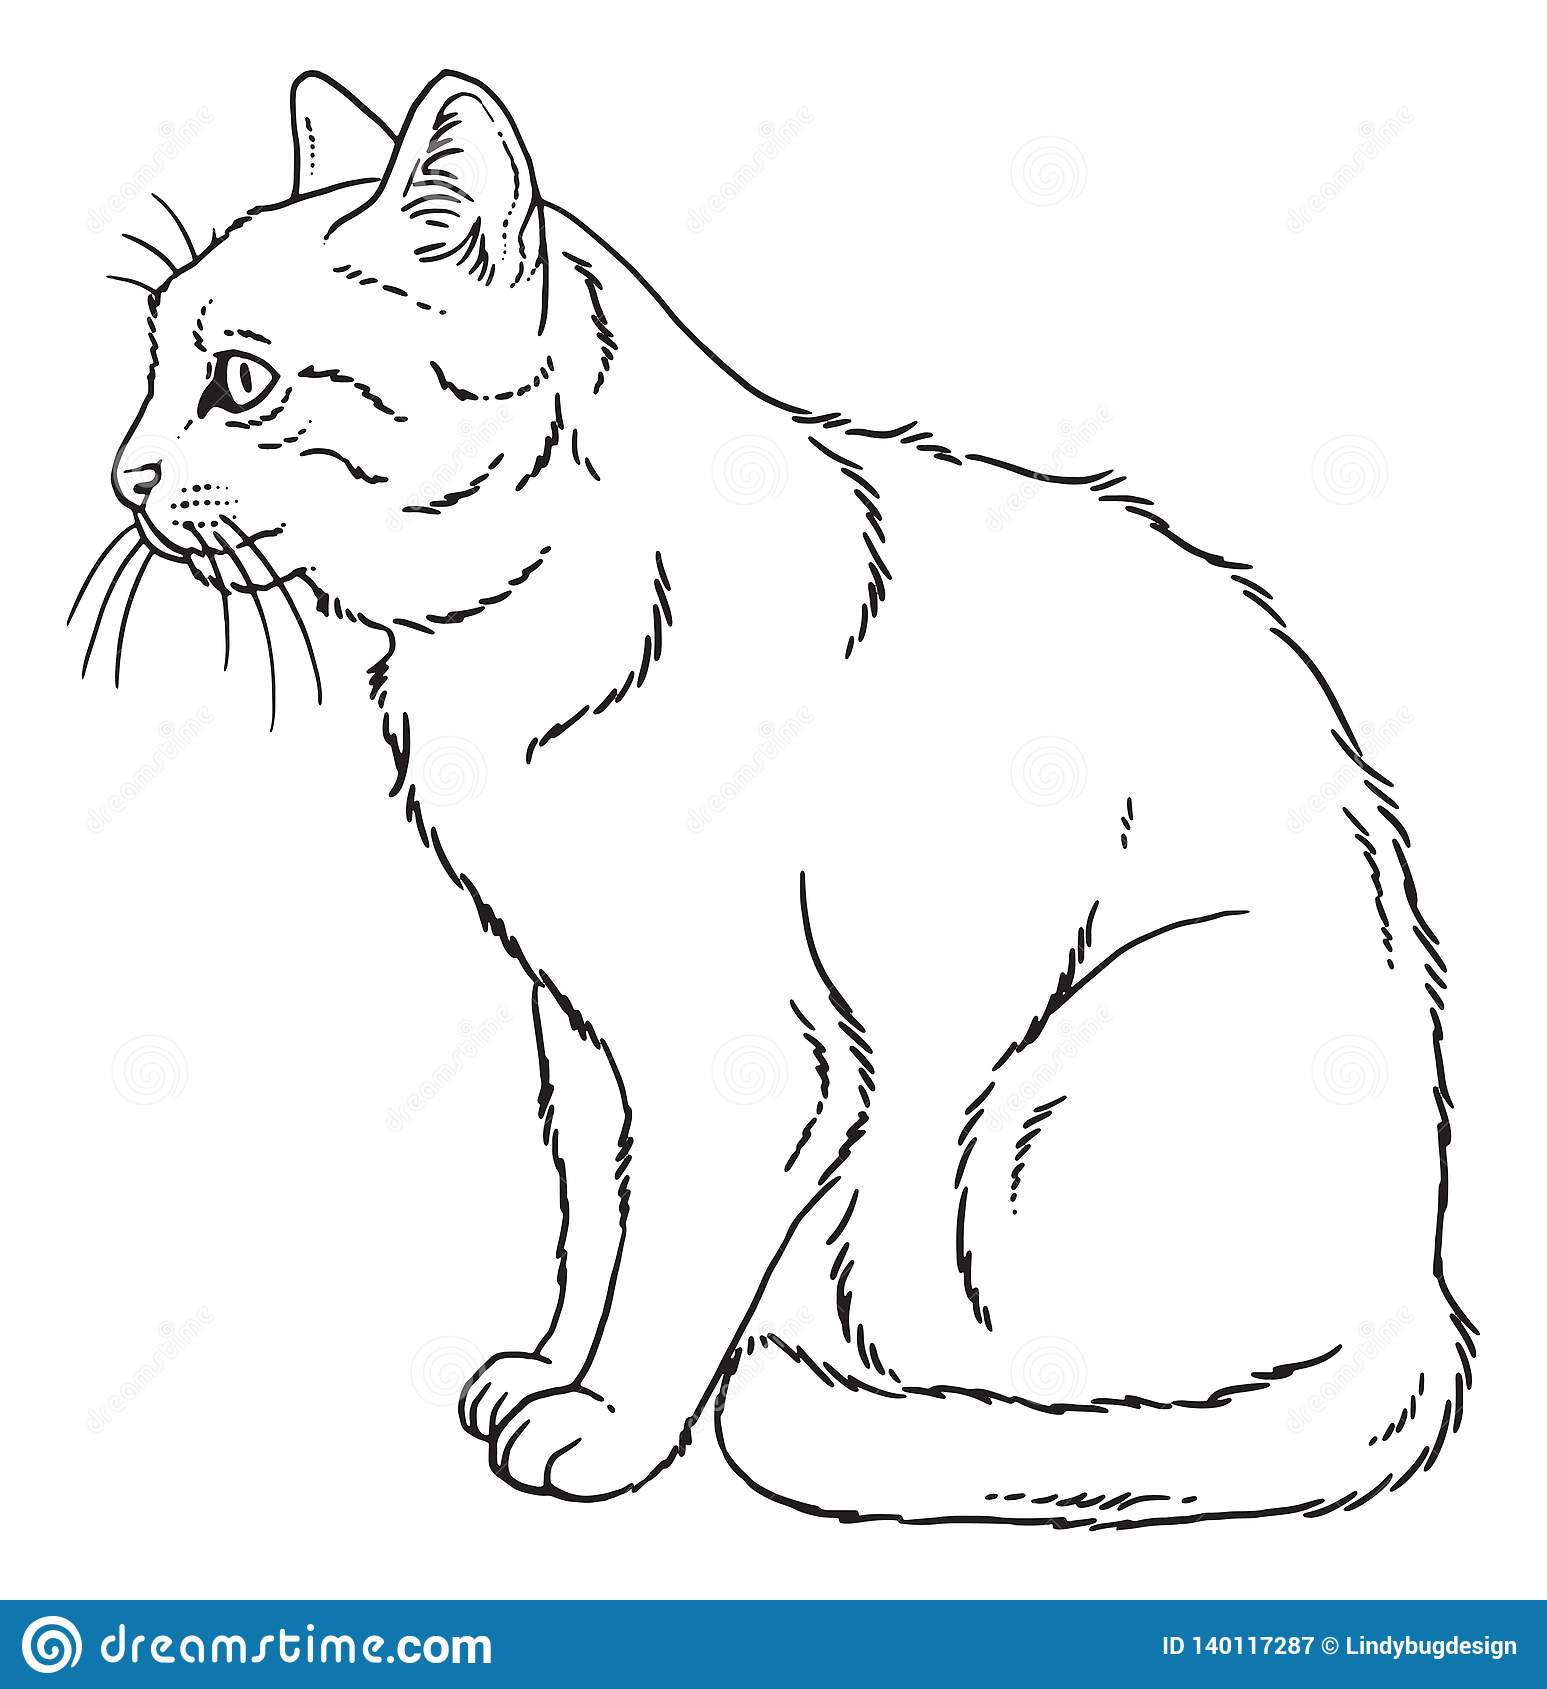 It is a graphic of Delicate Line Drawing Saut De Chat